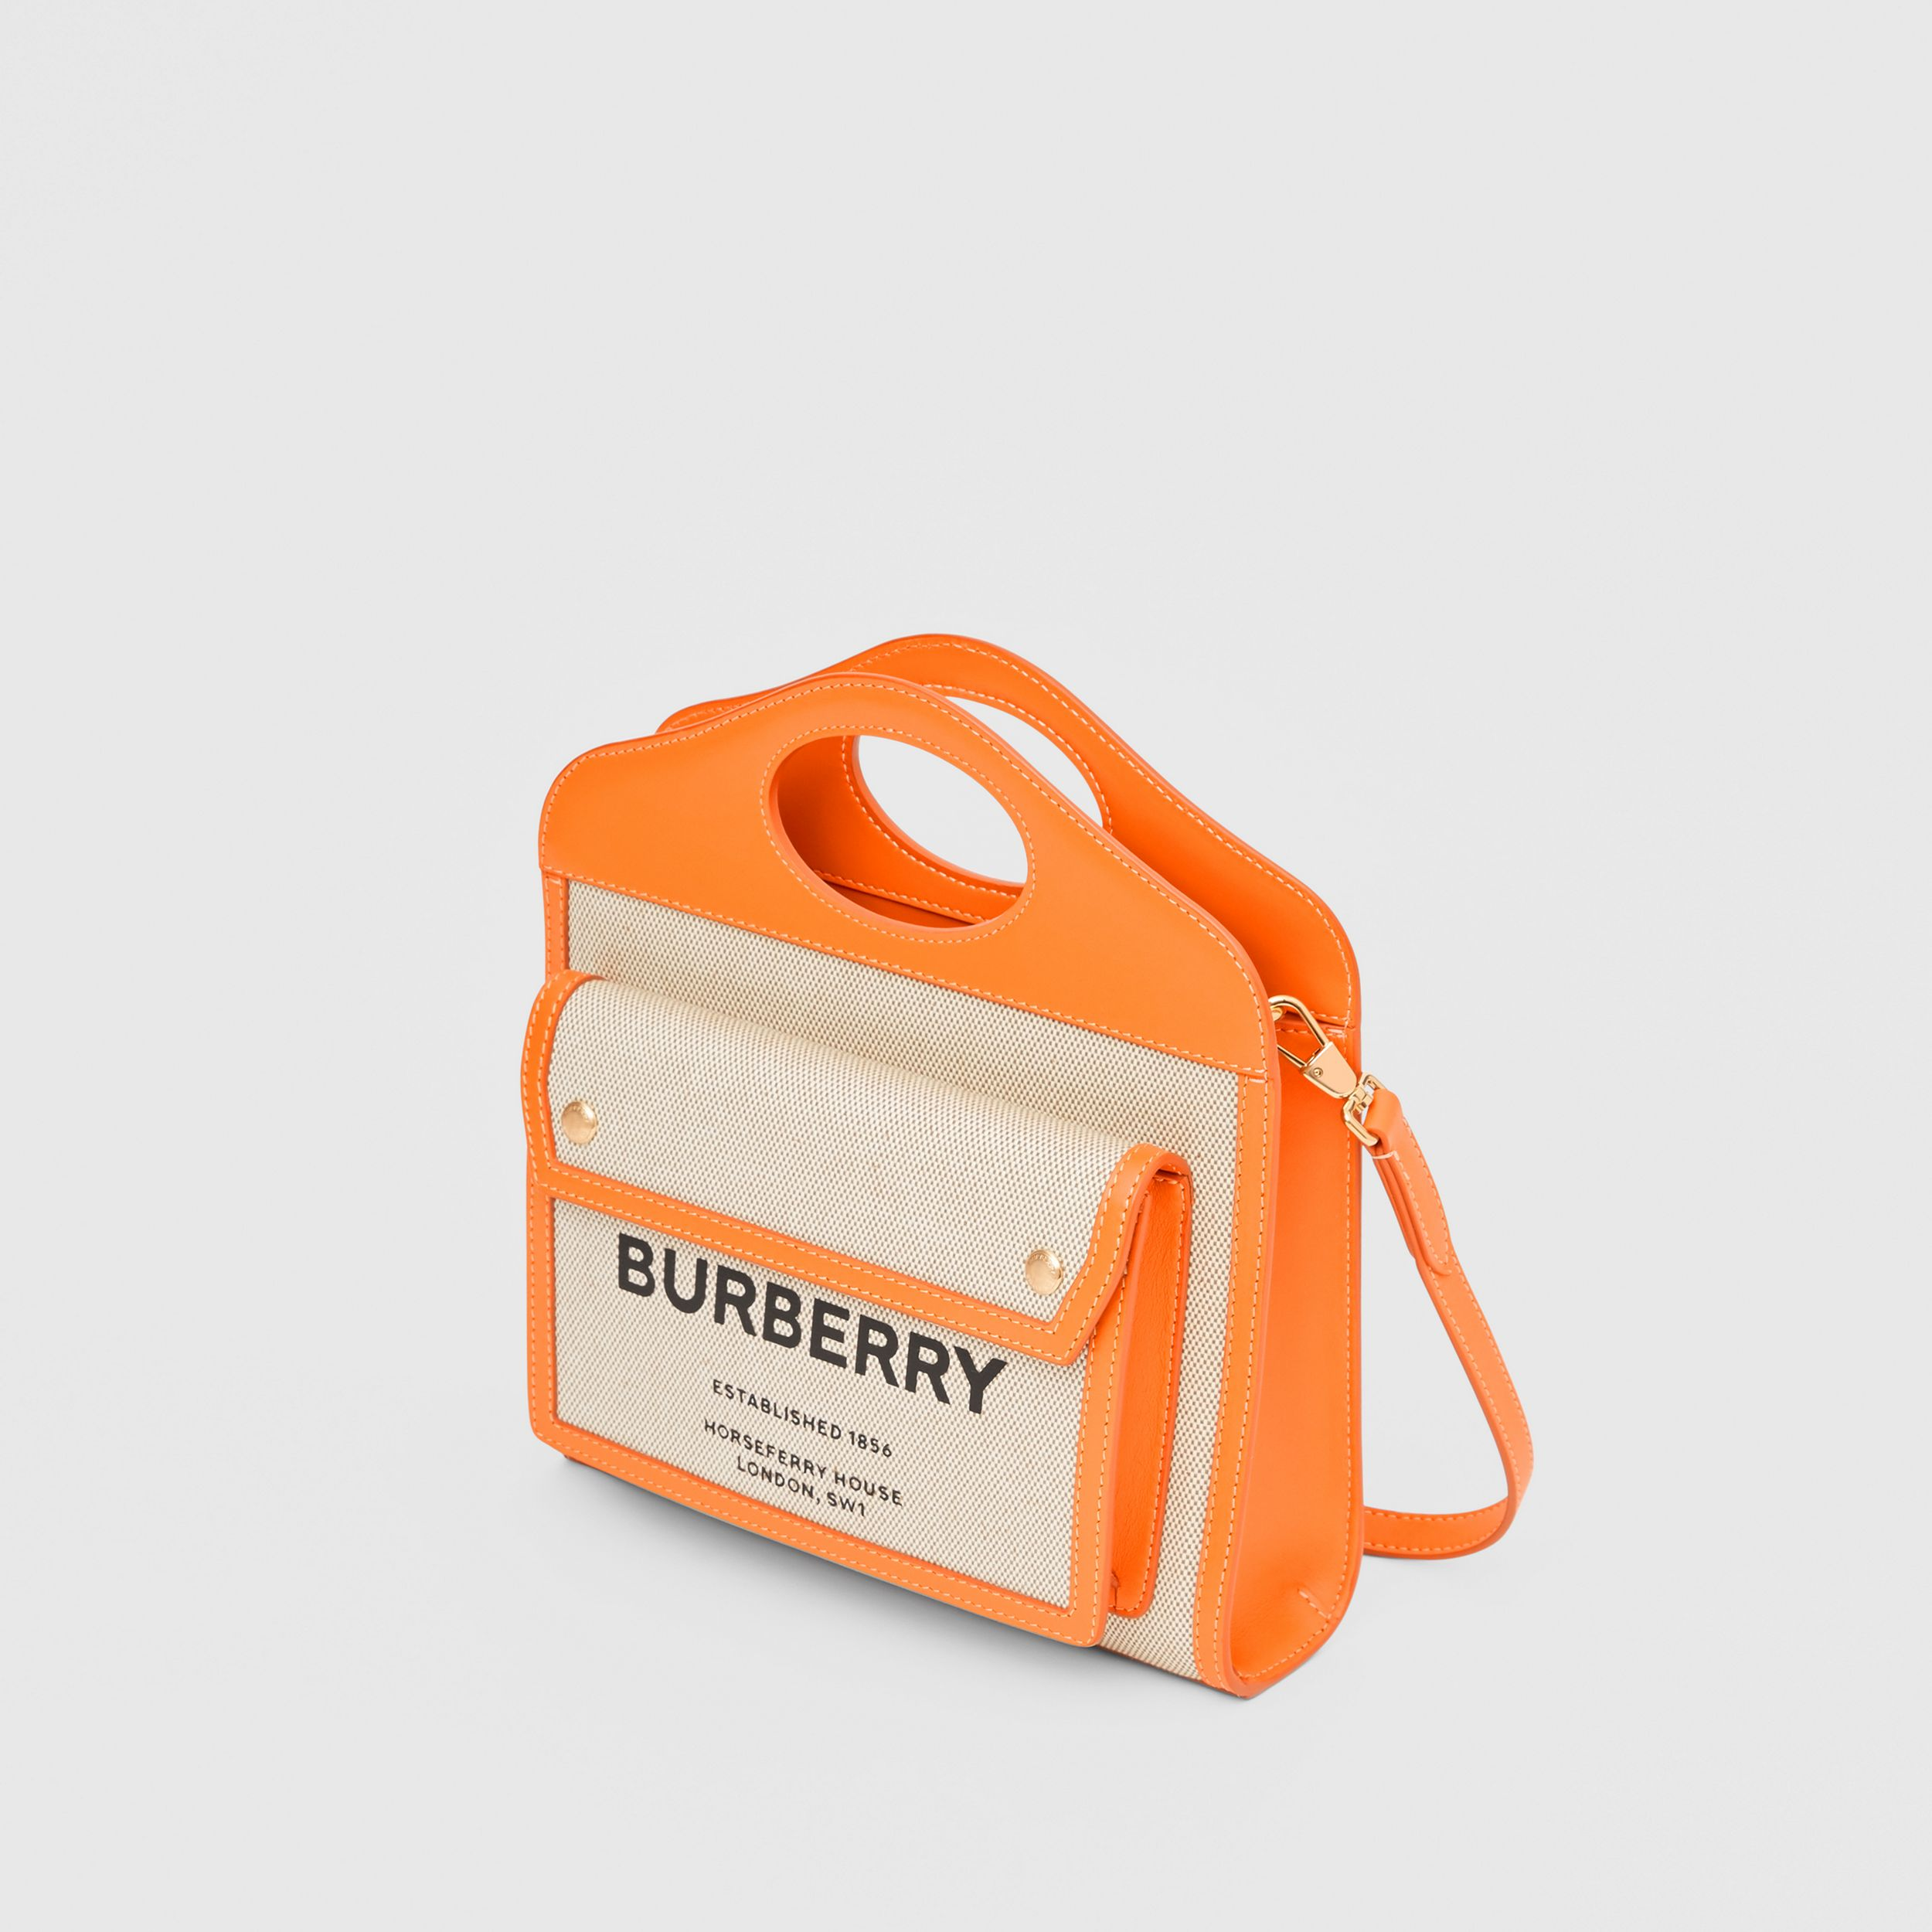 Mini Two-tone Canvas and Leather Pocket Bag in Orange - Women | Burberry - 4